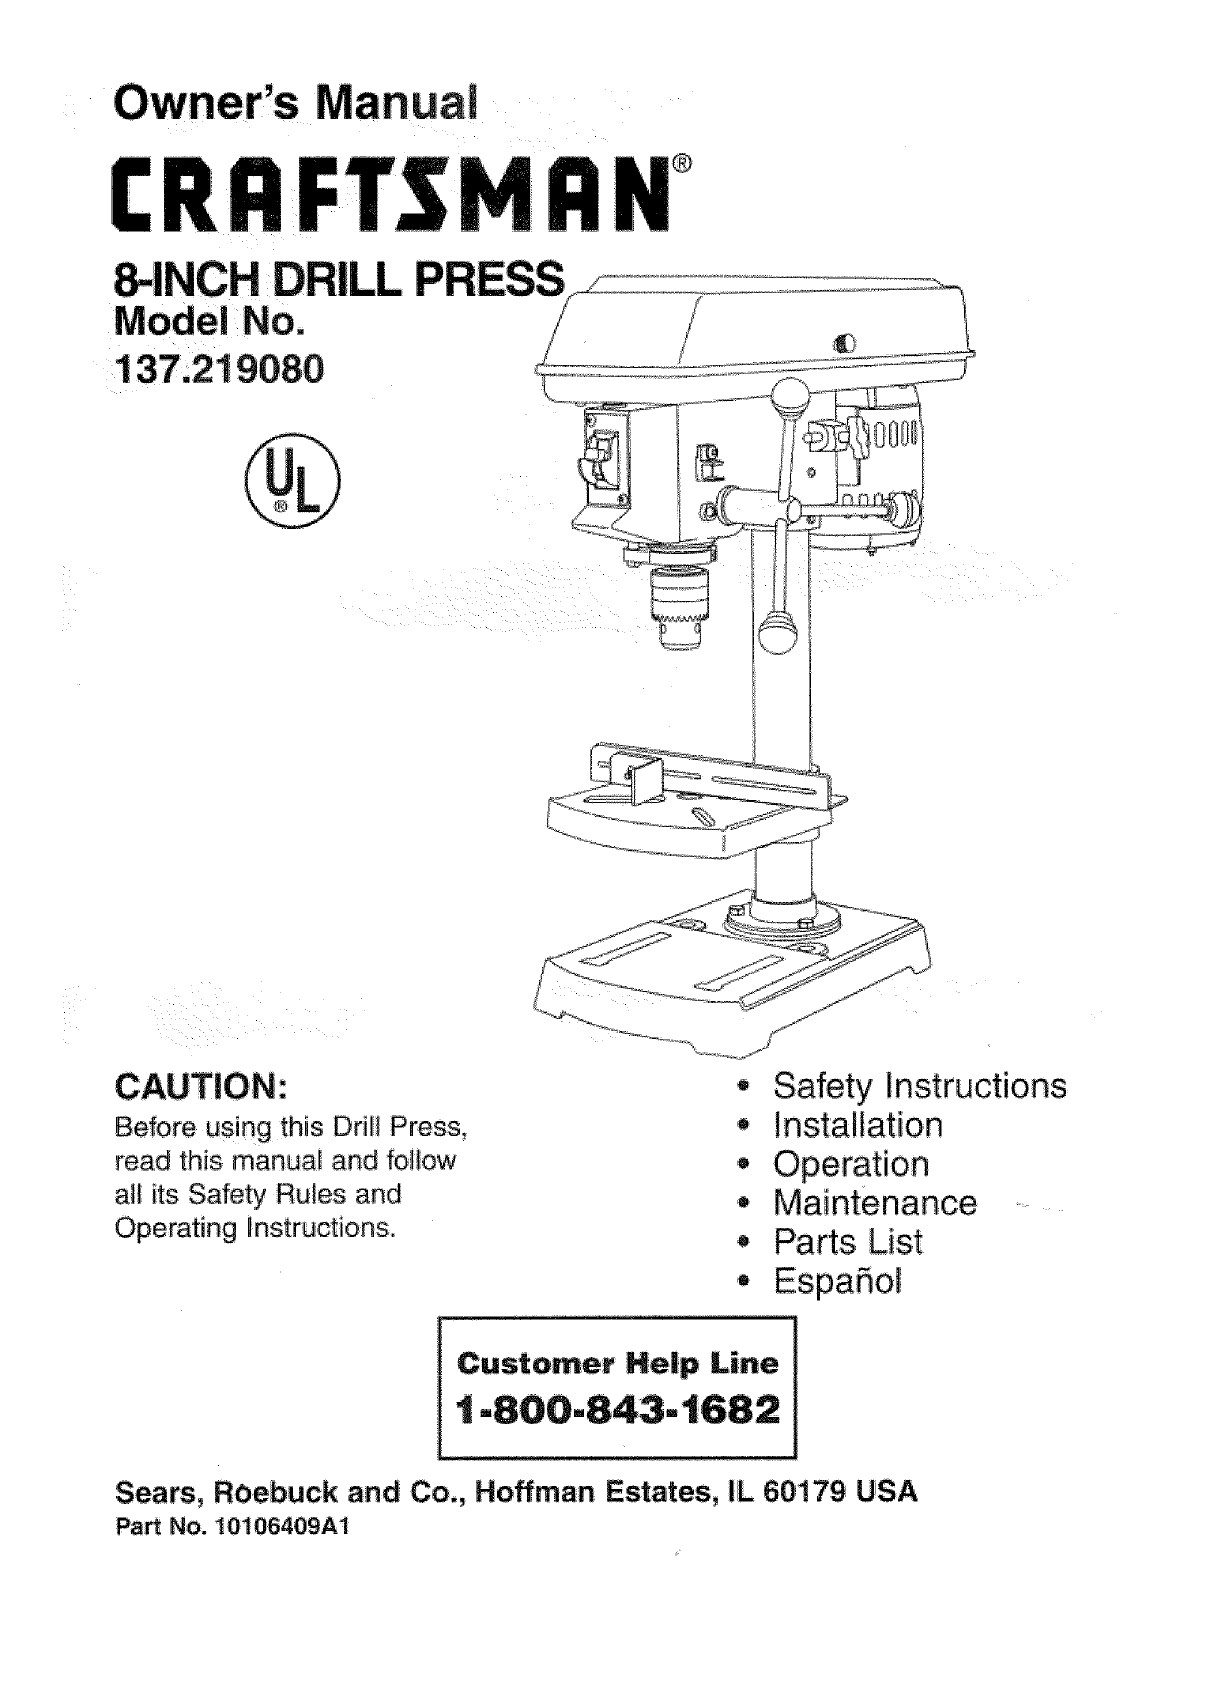 Drill Press Parts Diagram Craftsman User Manual 8 Drill Press Manuals and Guides Of Drill Press Parts Diagram